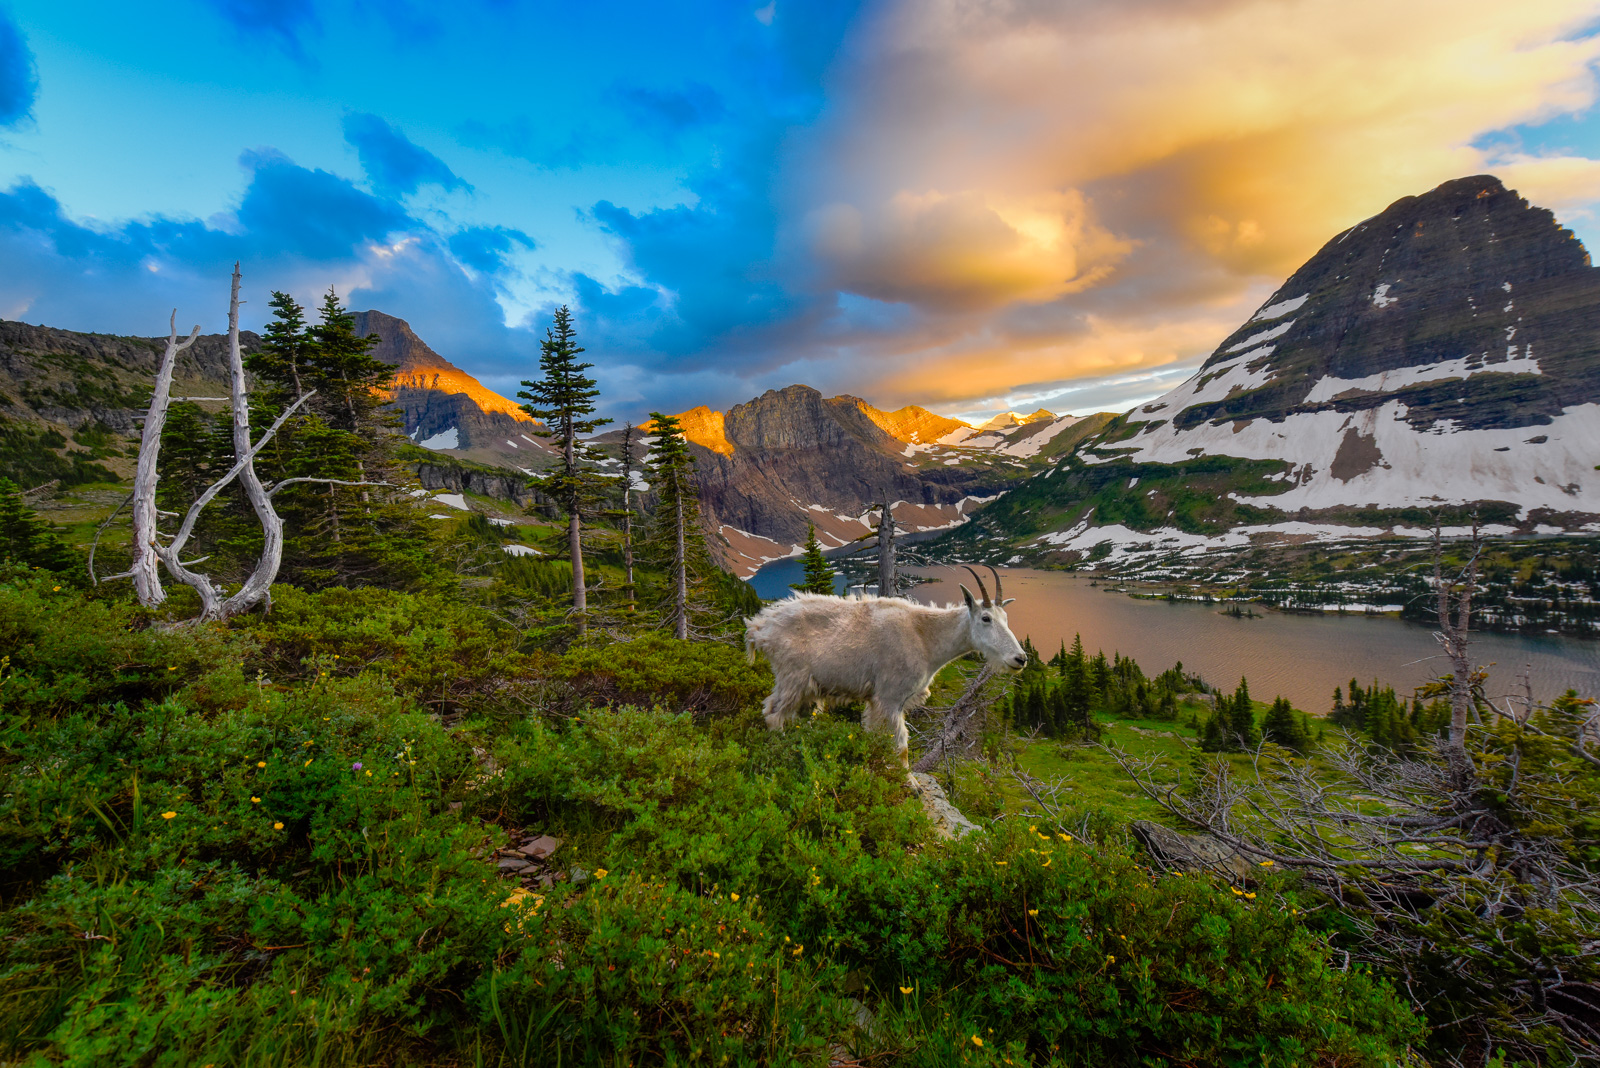 Mountain Goat above Hidden Lake at sunset, Glacier National Park.Add beauty to your space with a Joseph Rossbach limited edition...